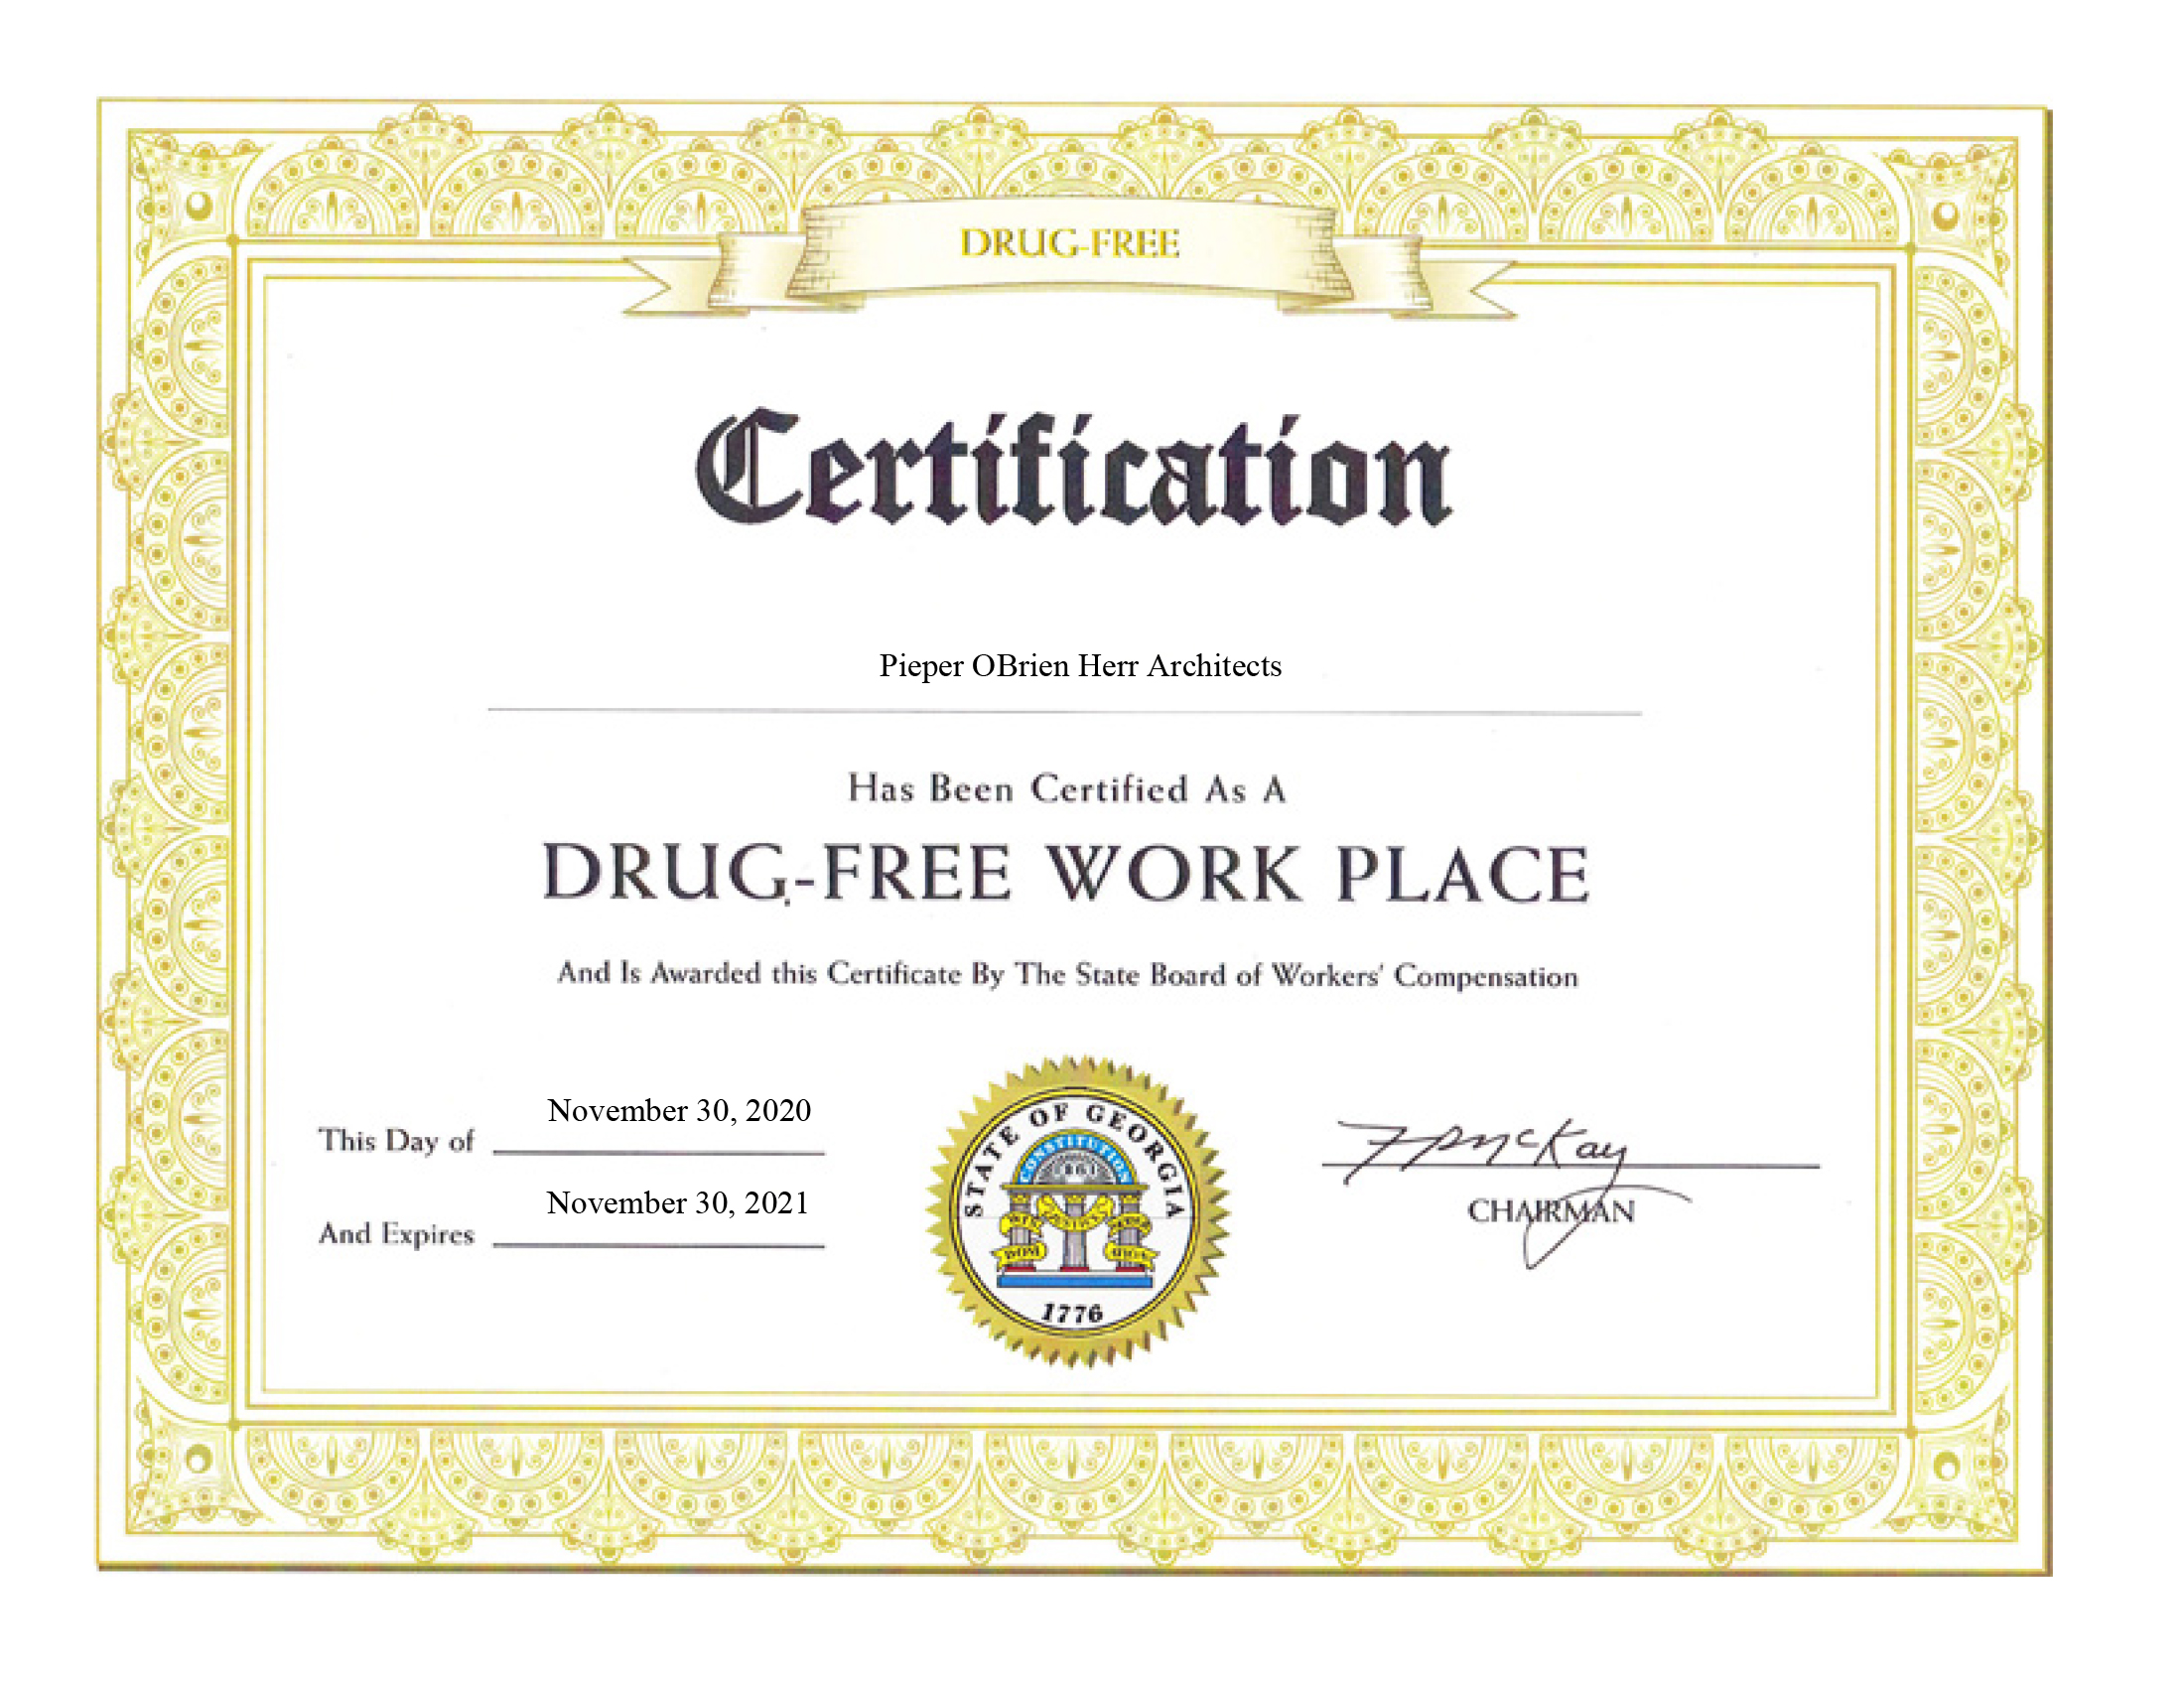 POH Drug Free Workplace Certificate